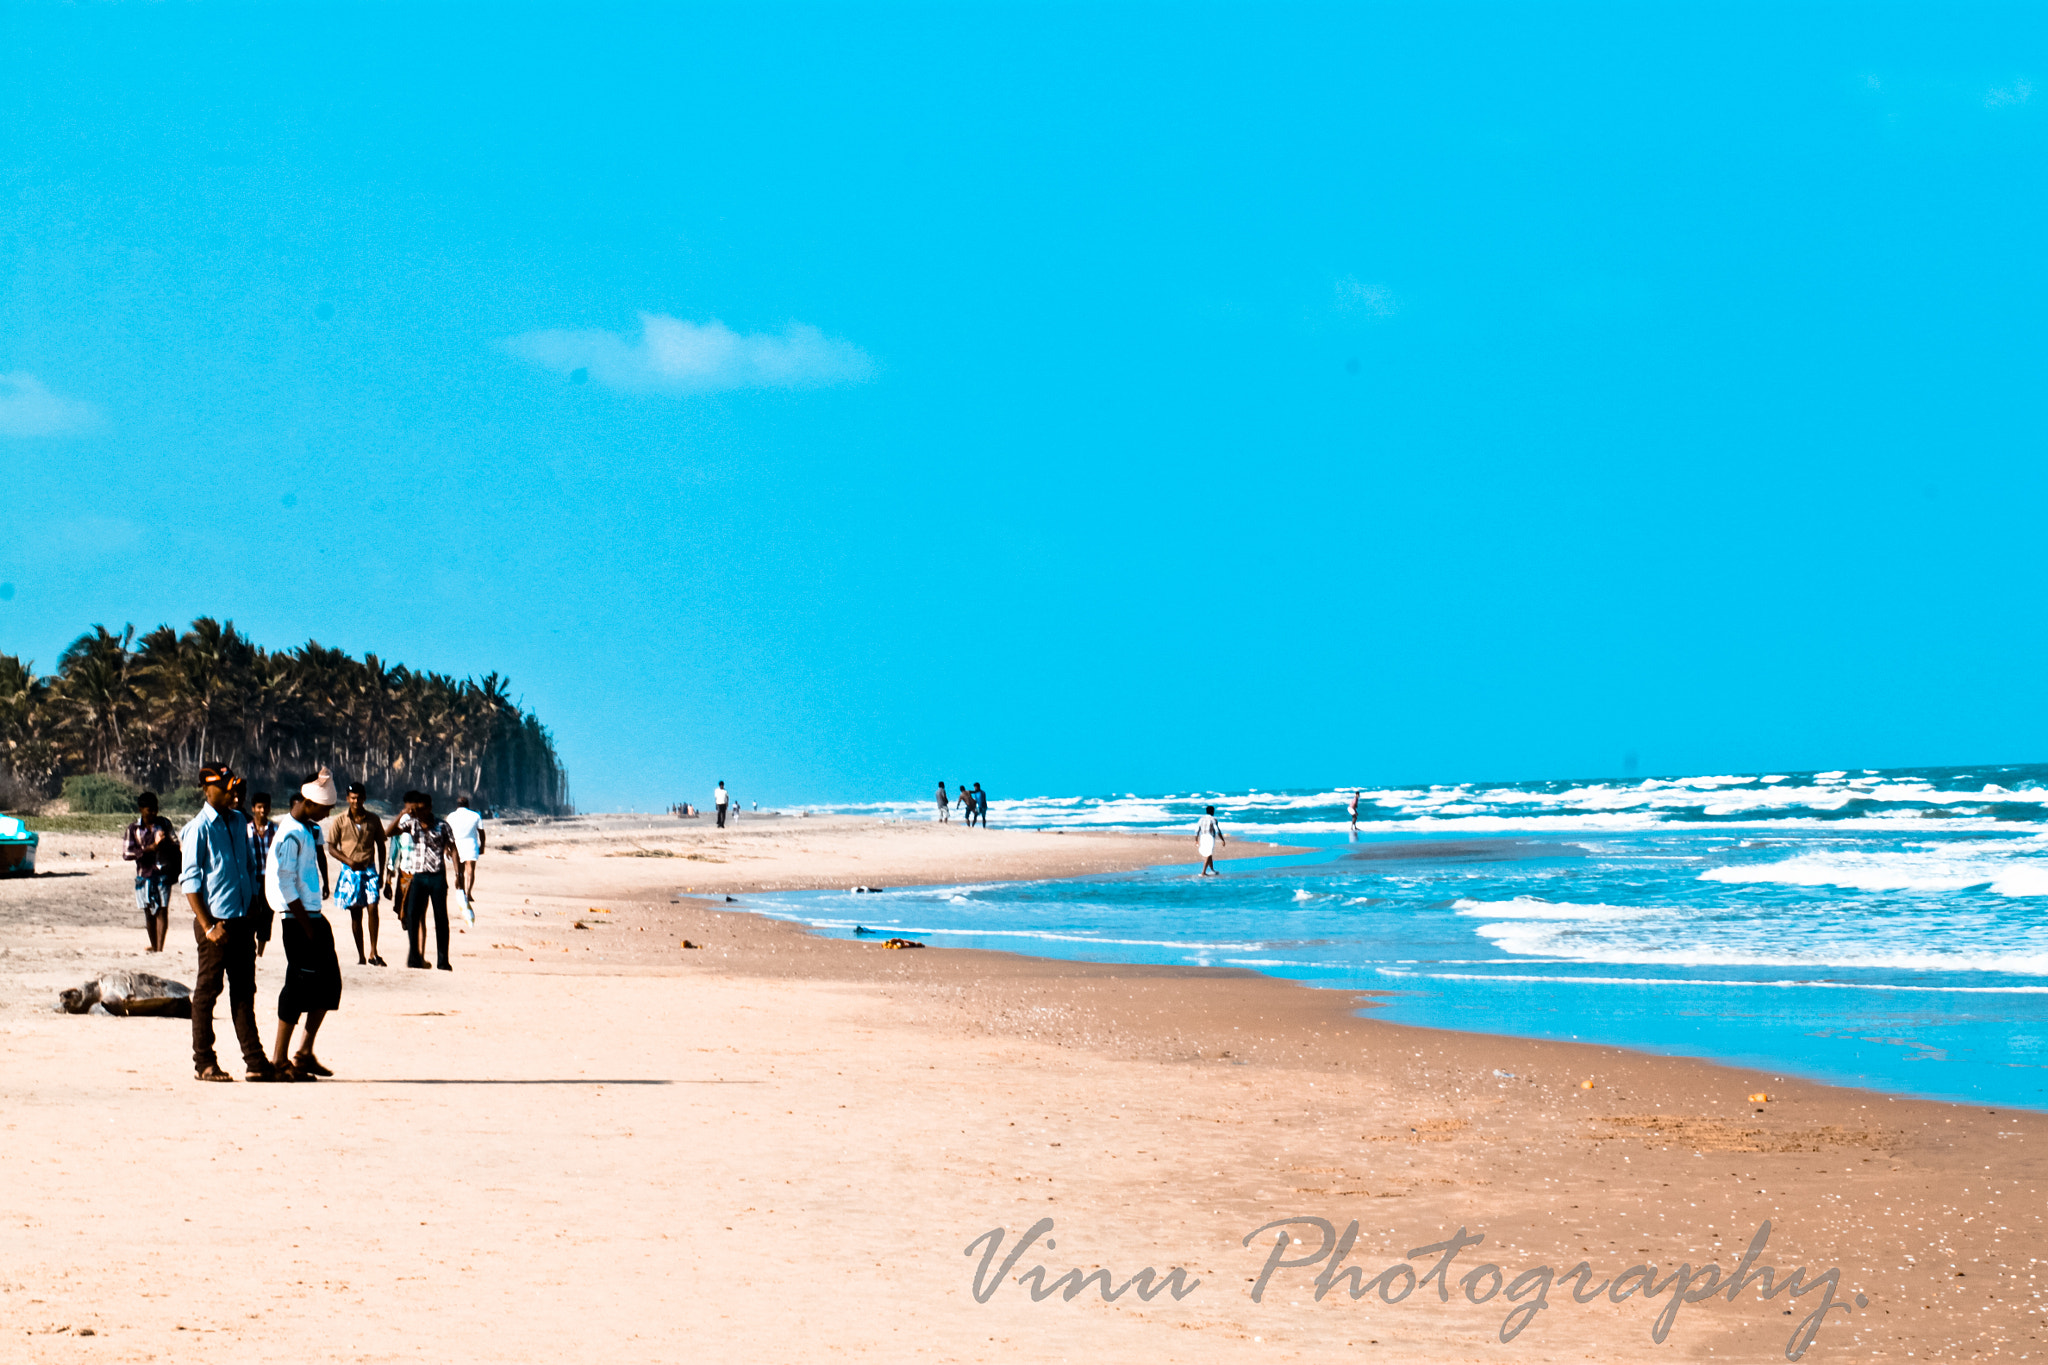 Photograph The Beautiful Beach of Velankanni by Vinu Padmanabhan on 500px